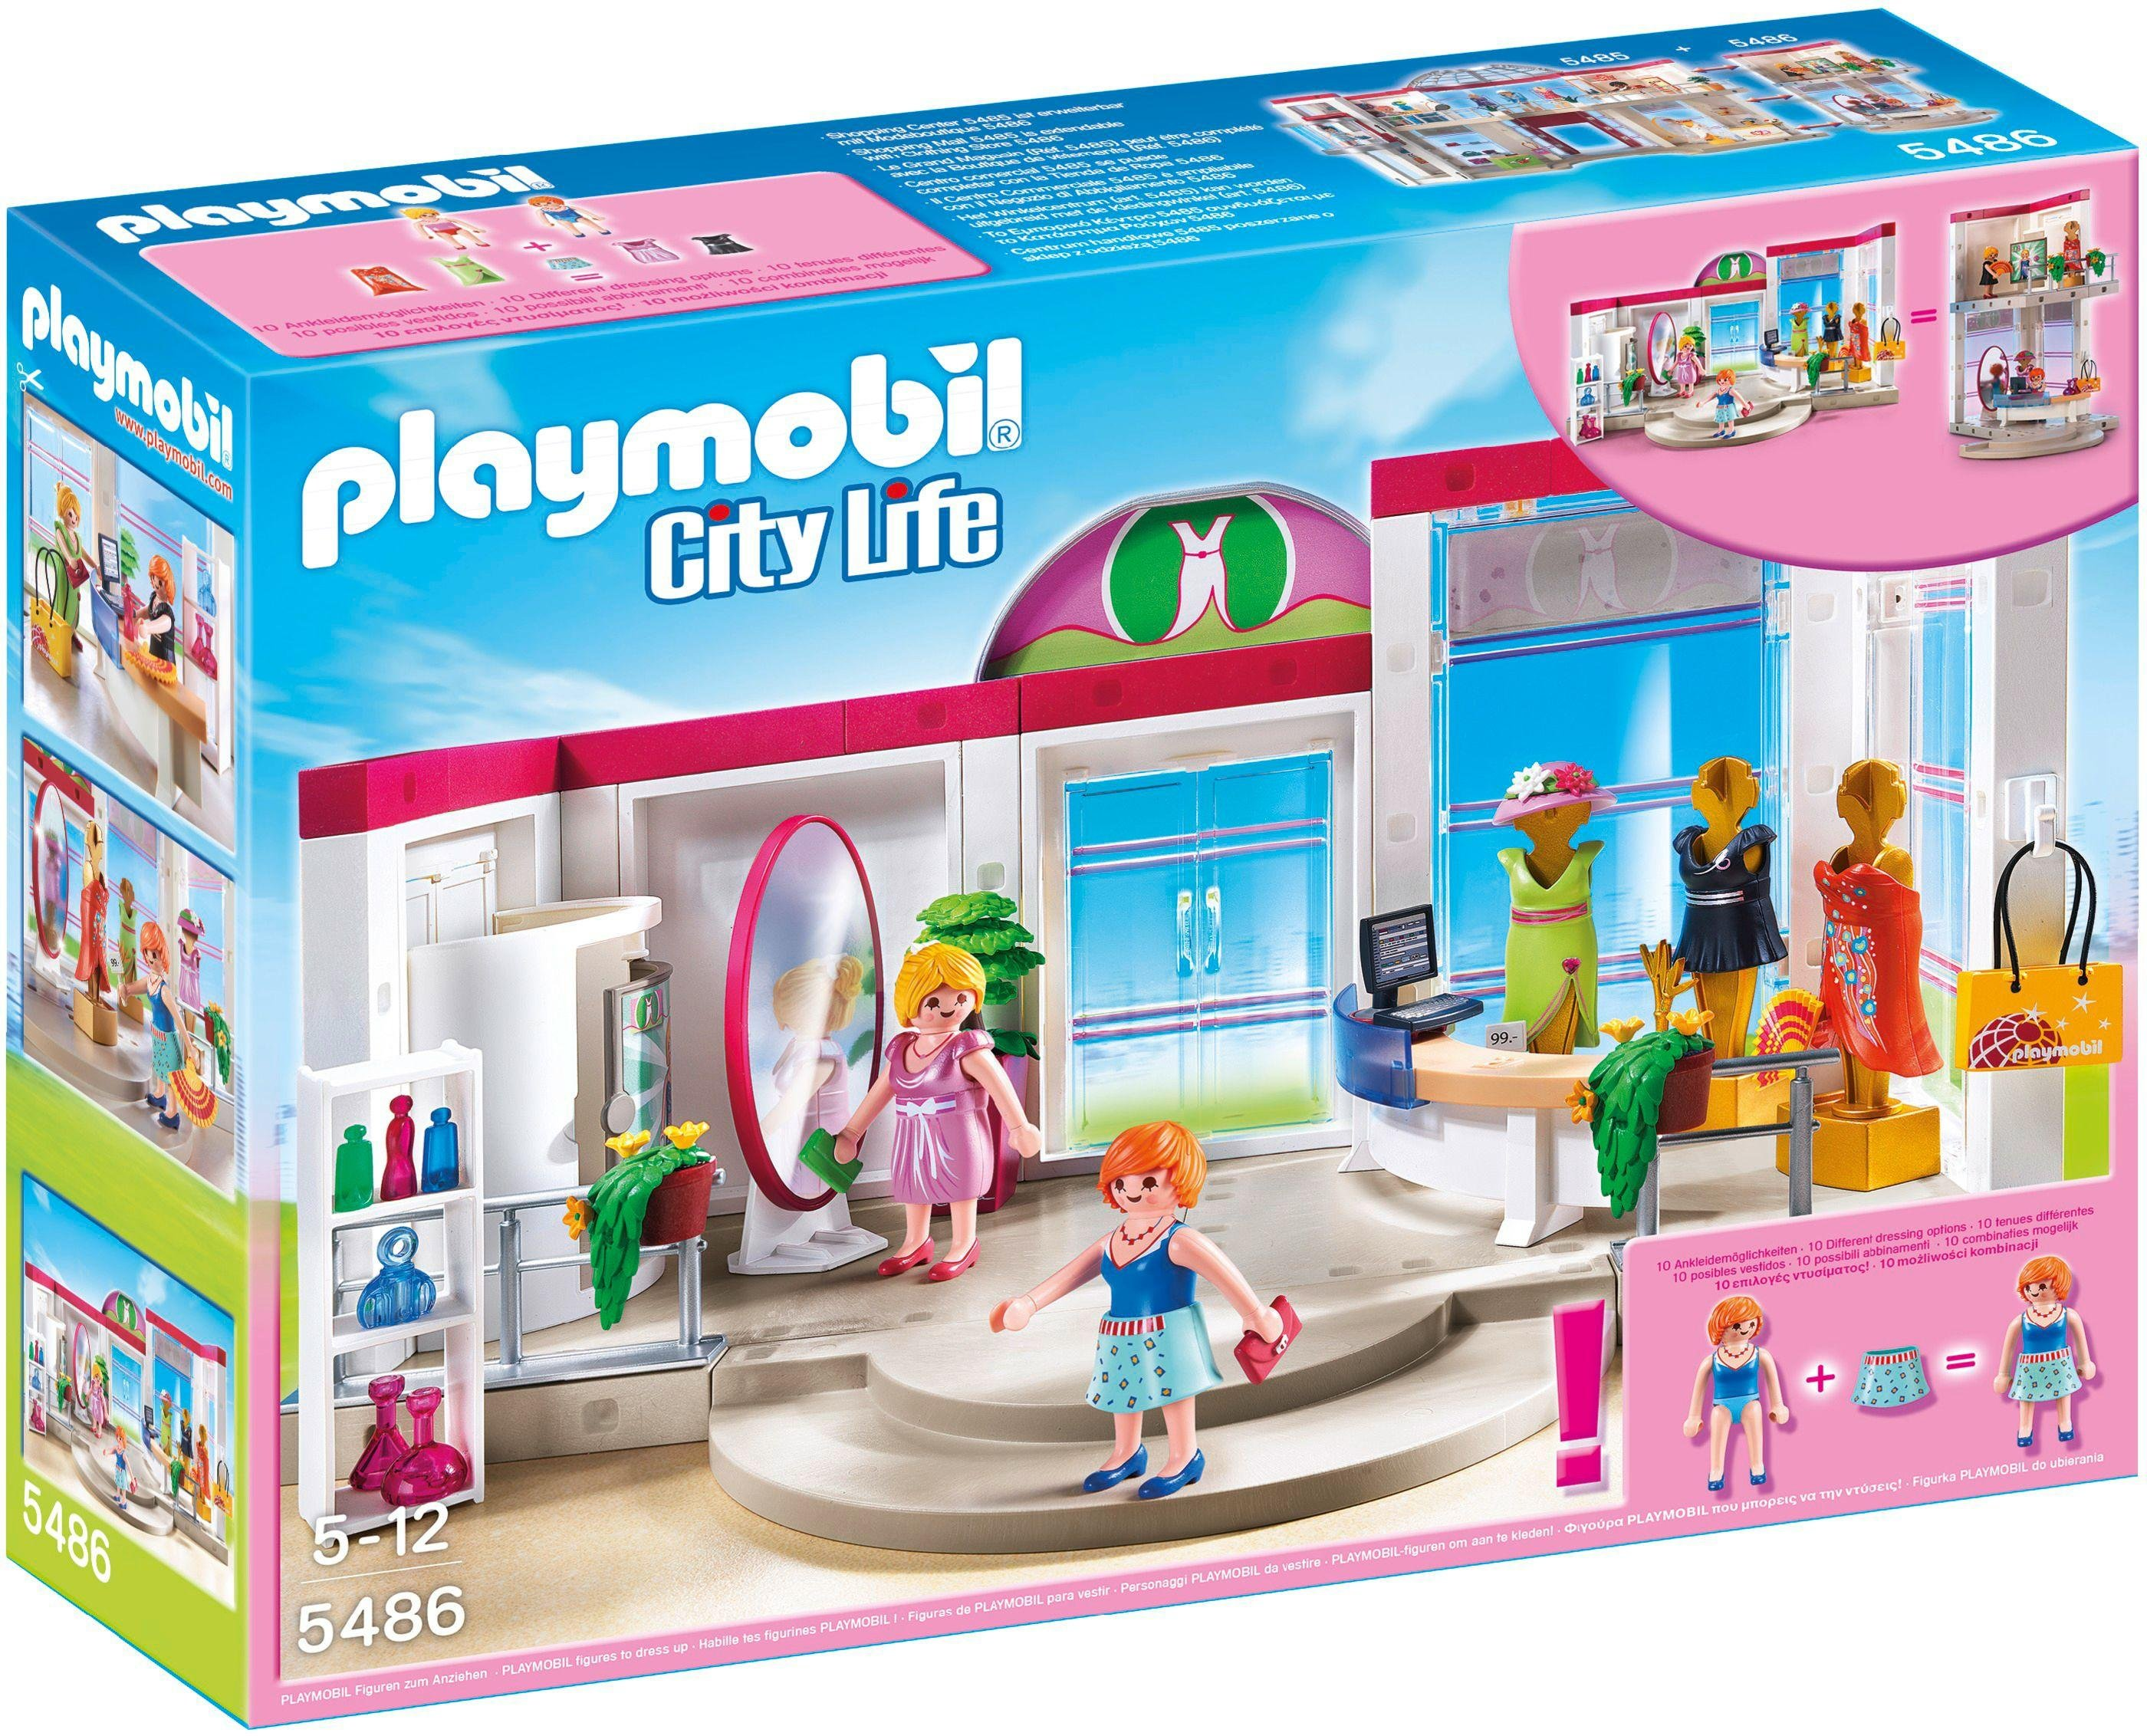 Playmobil 5486 City Life Clothing Boutique.